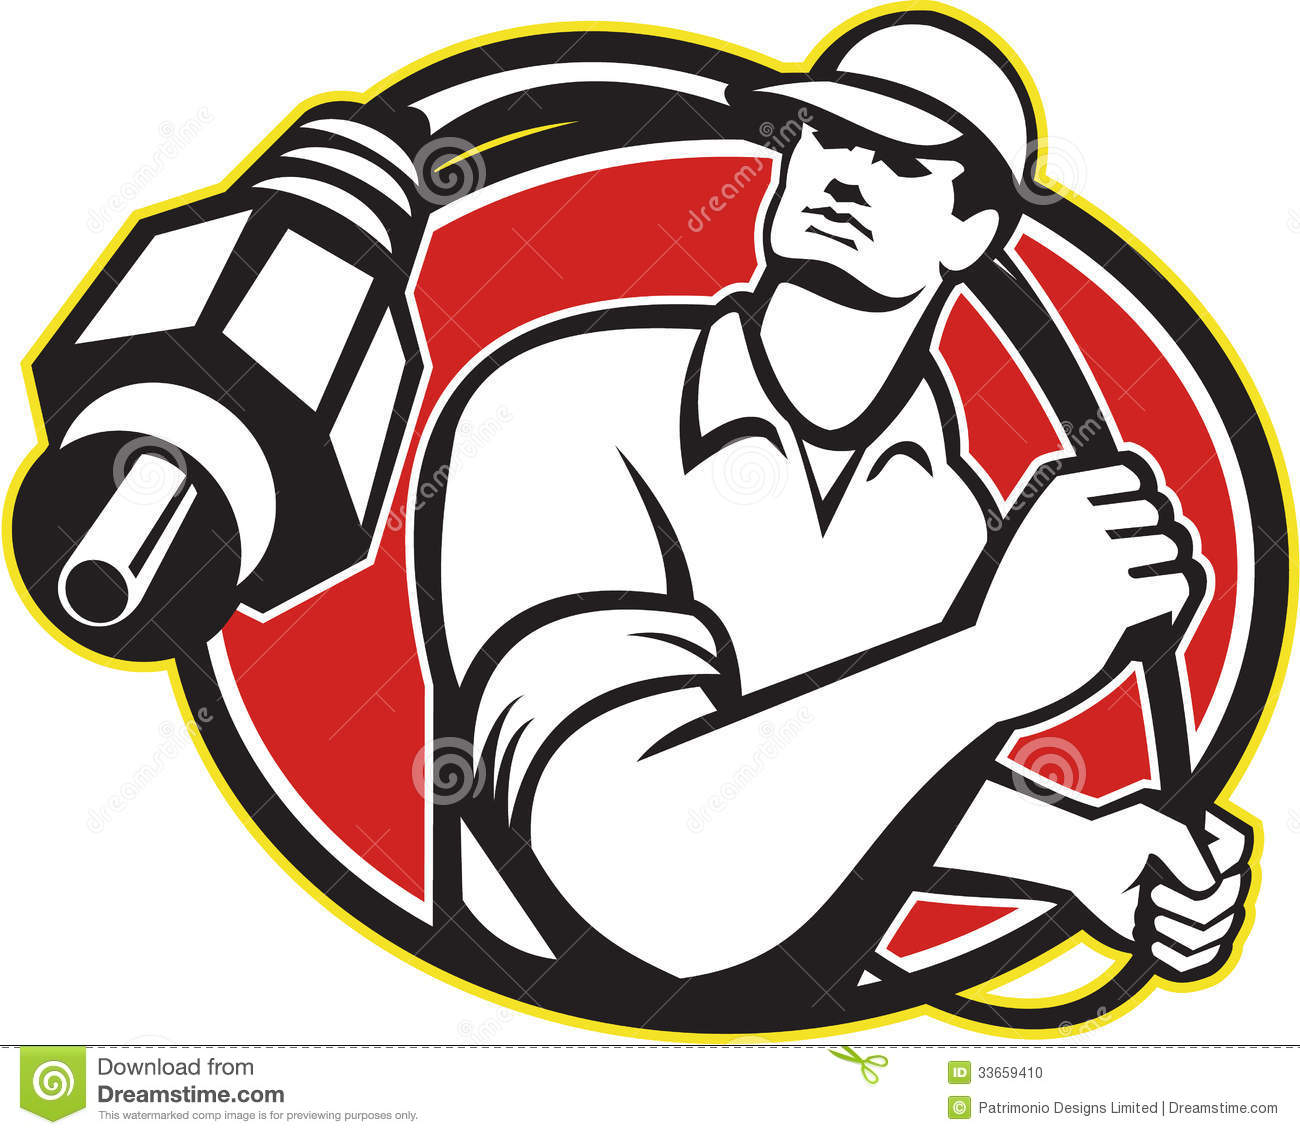 Cable TV Installer Guy Stock Photo - Image: 33659410